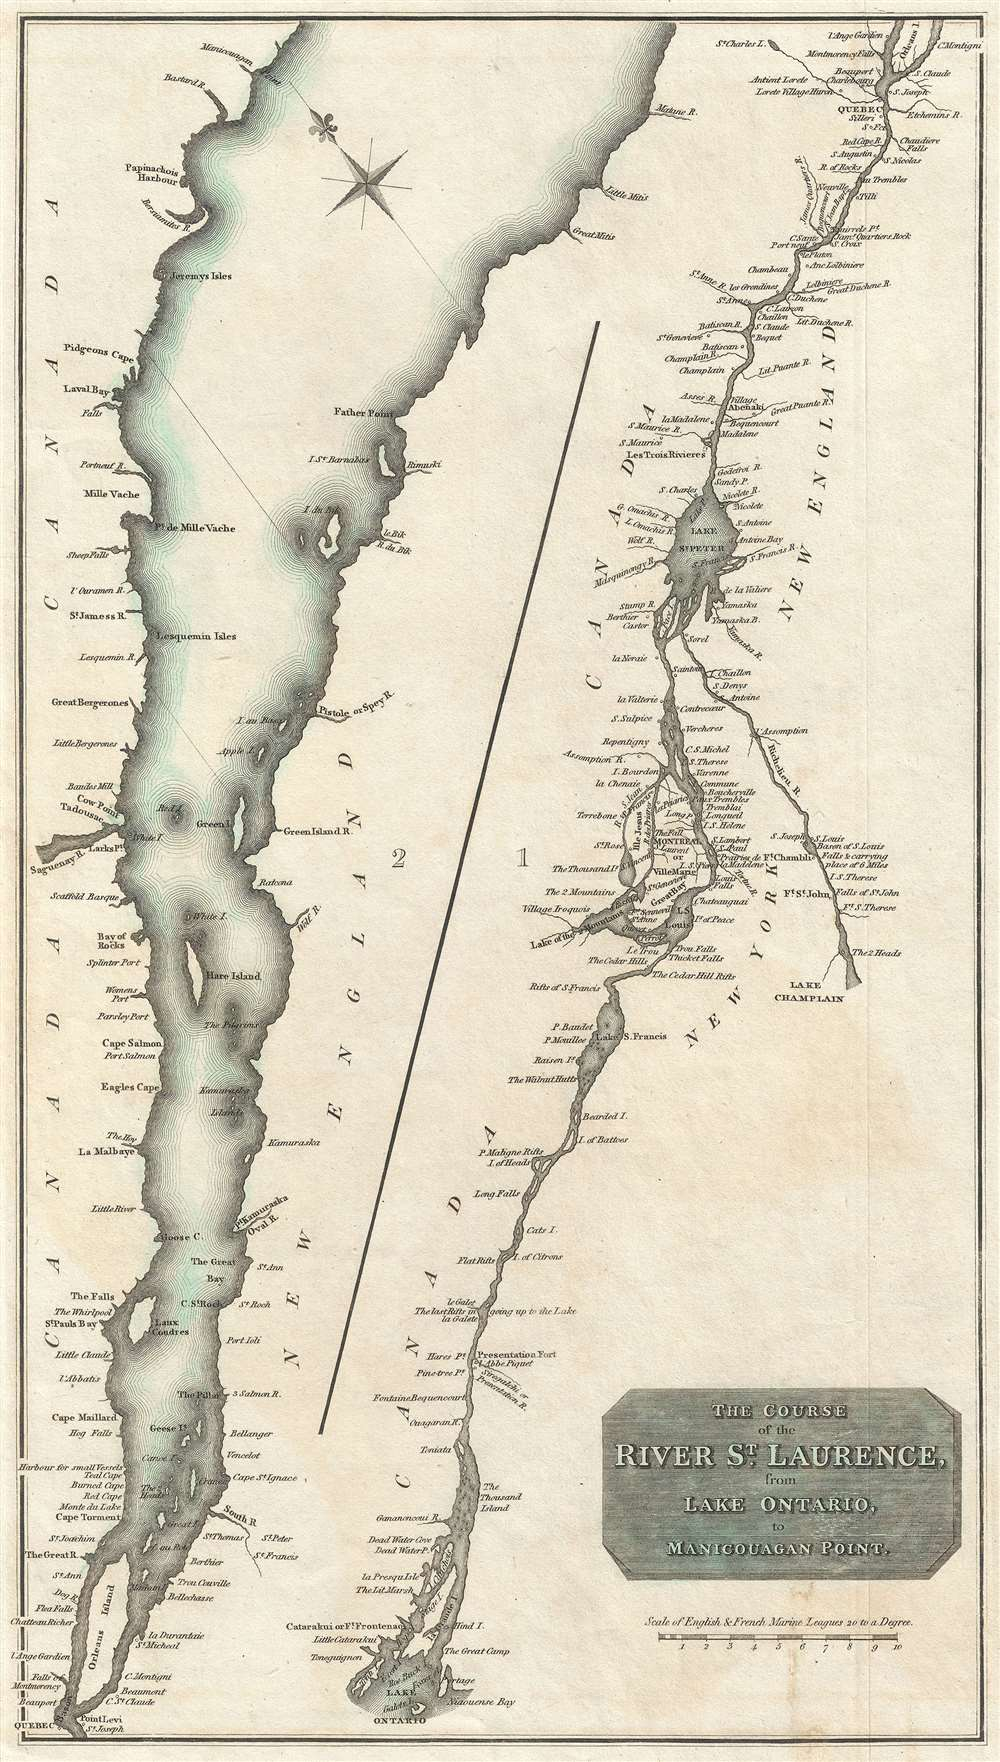 The Course of the River St. Laurence, from Lake Ontario to Manicouagan Point. - Main View